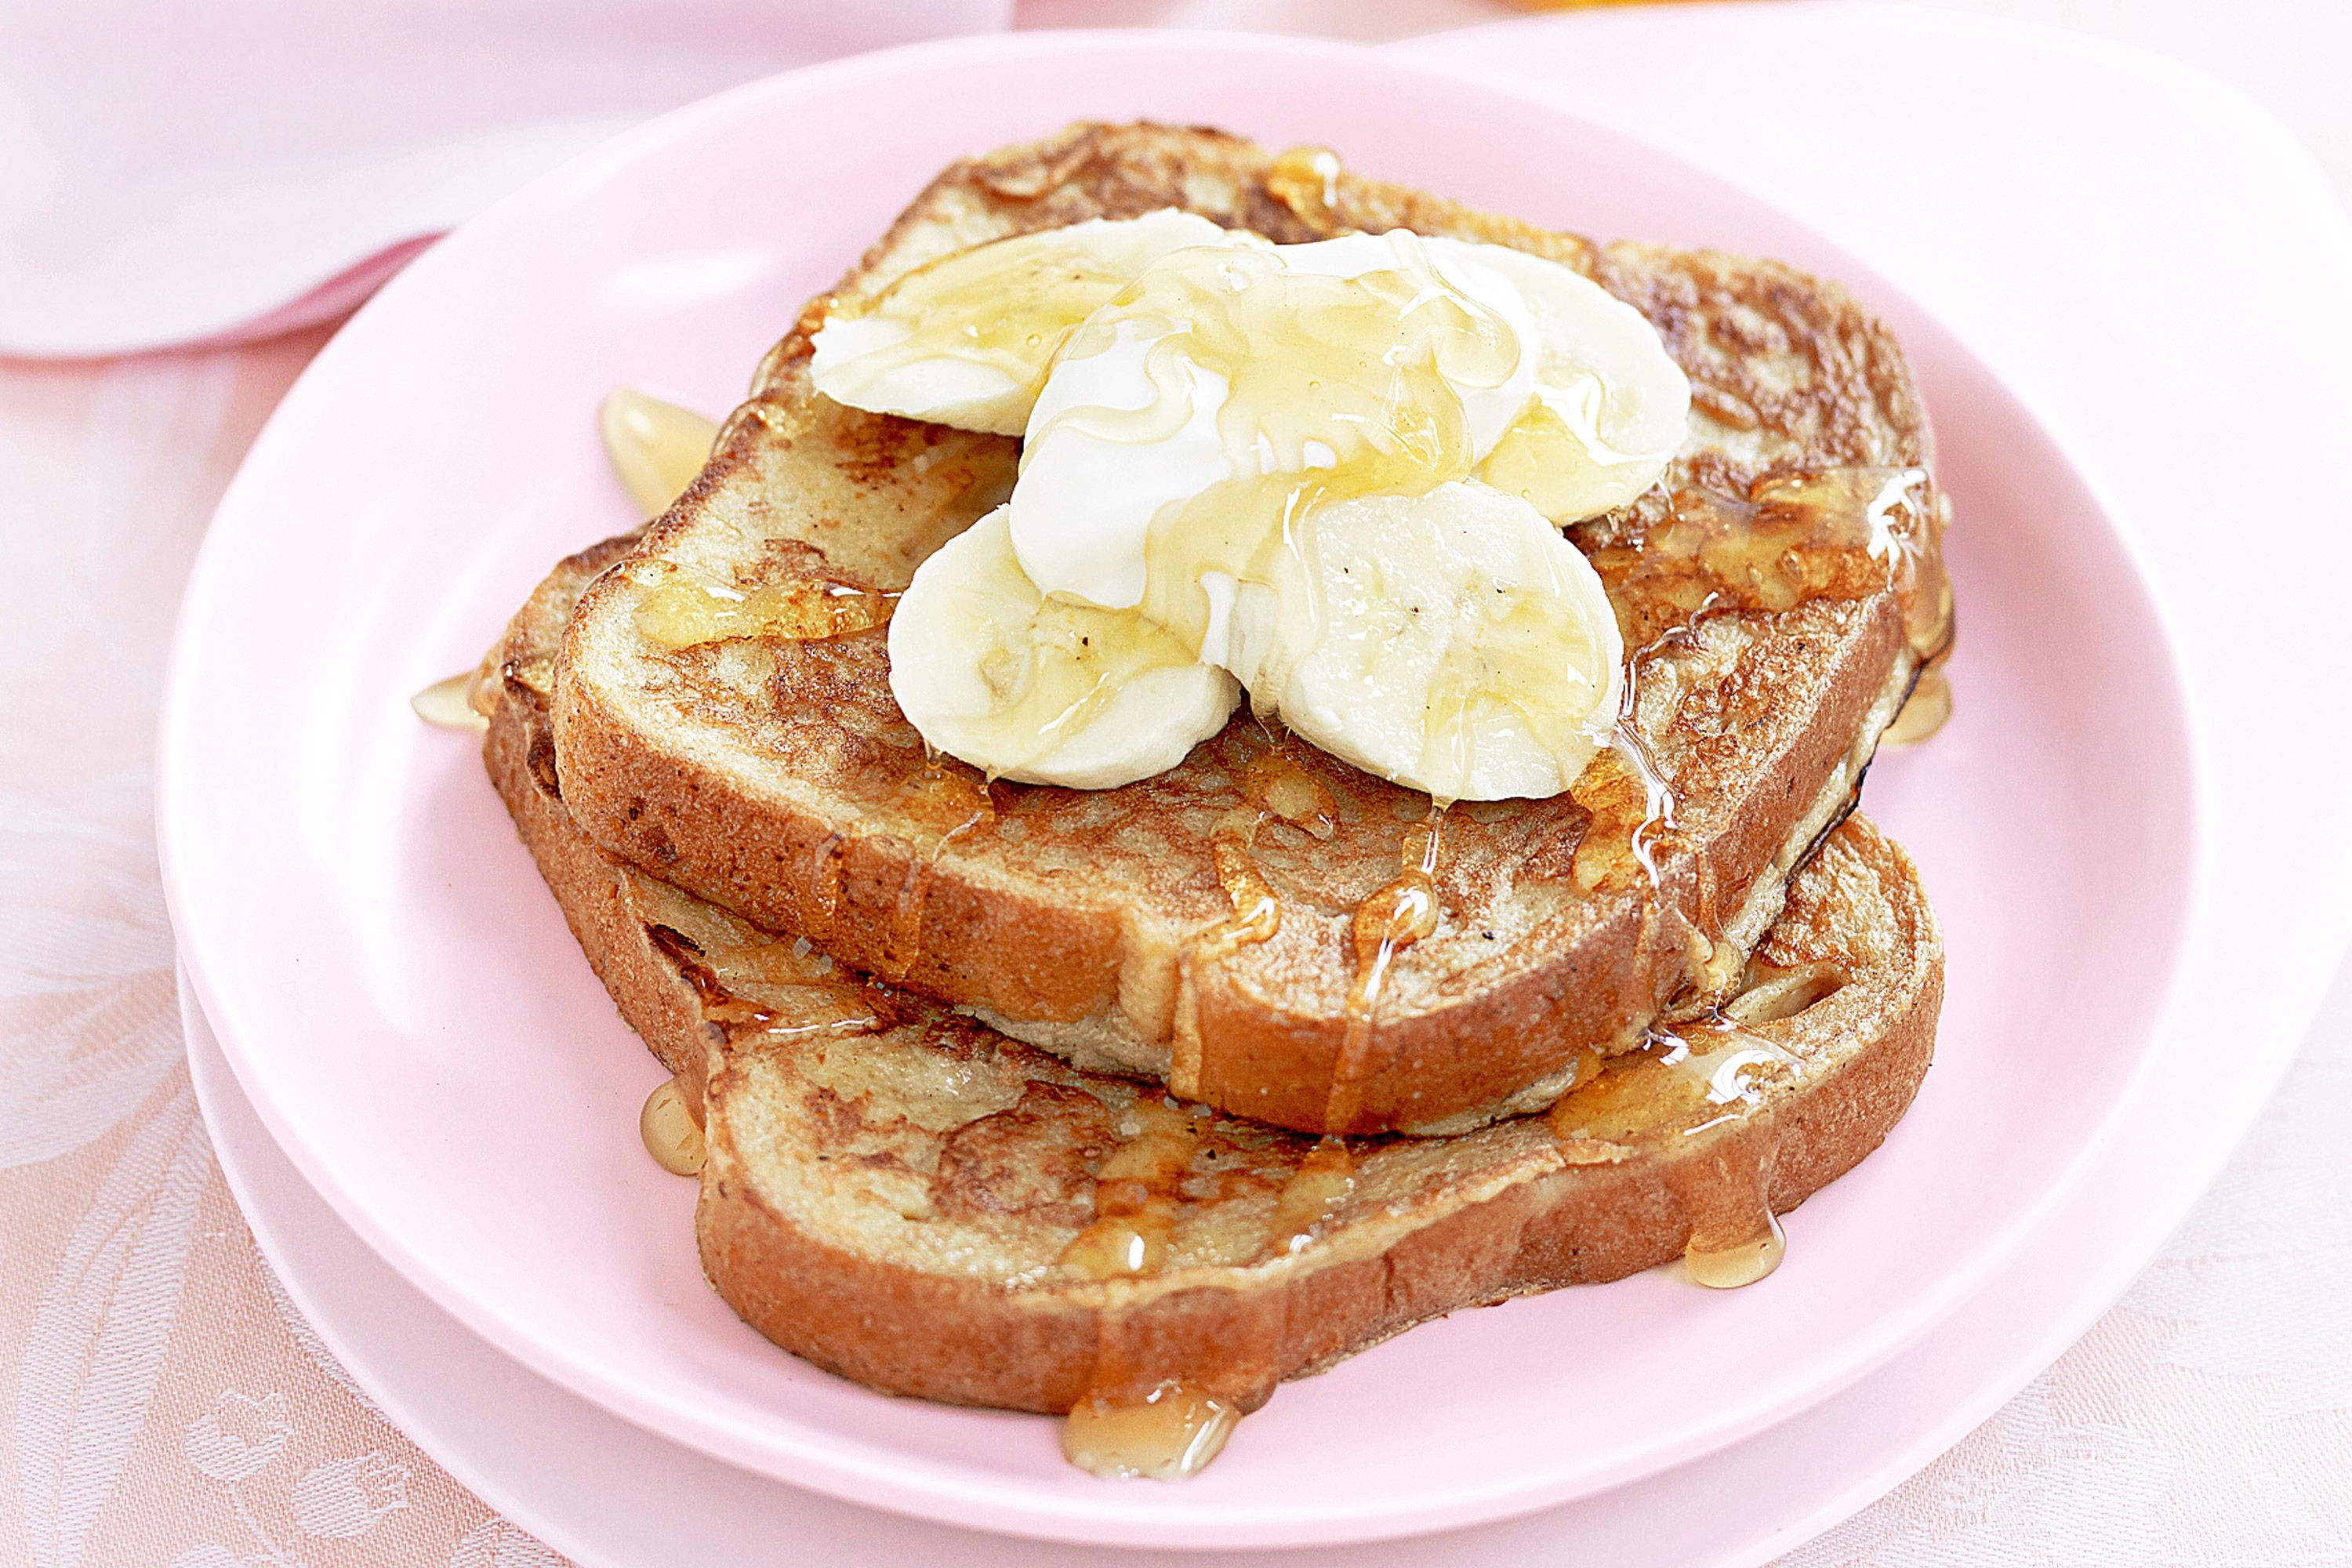 coconut-french-toast-85755-1.jpeg